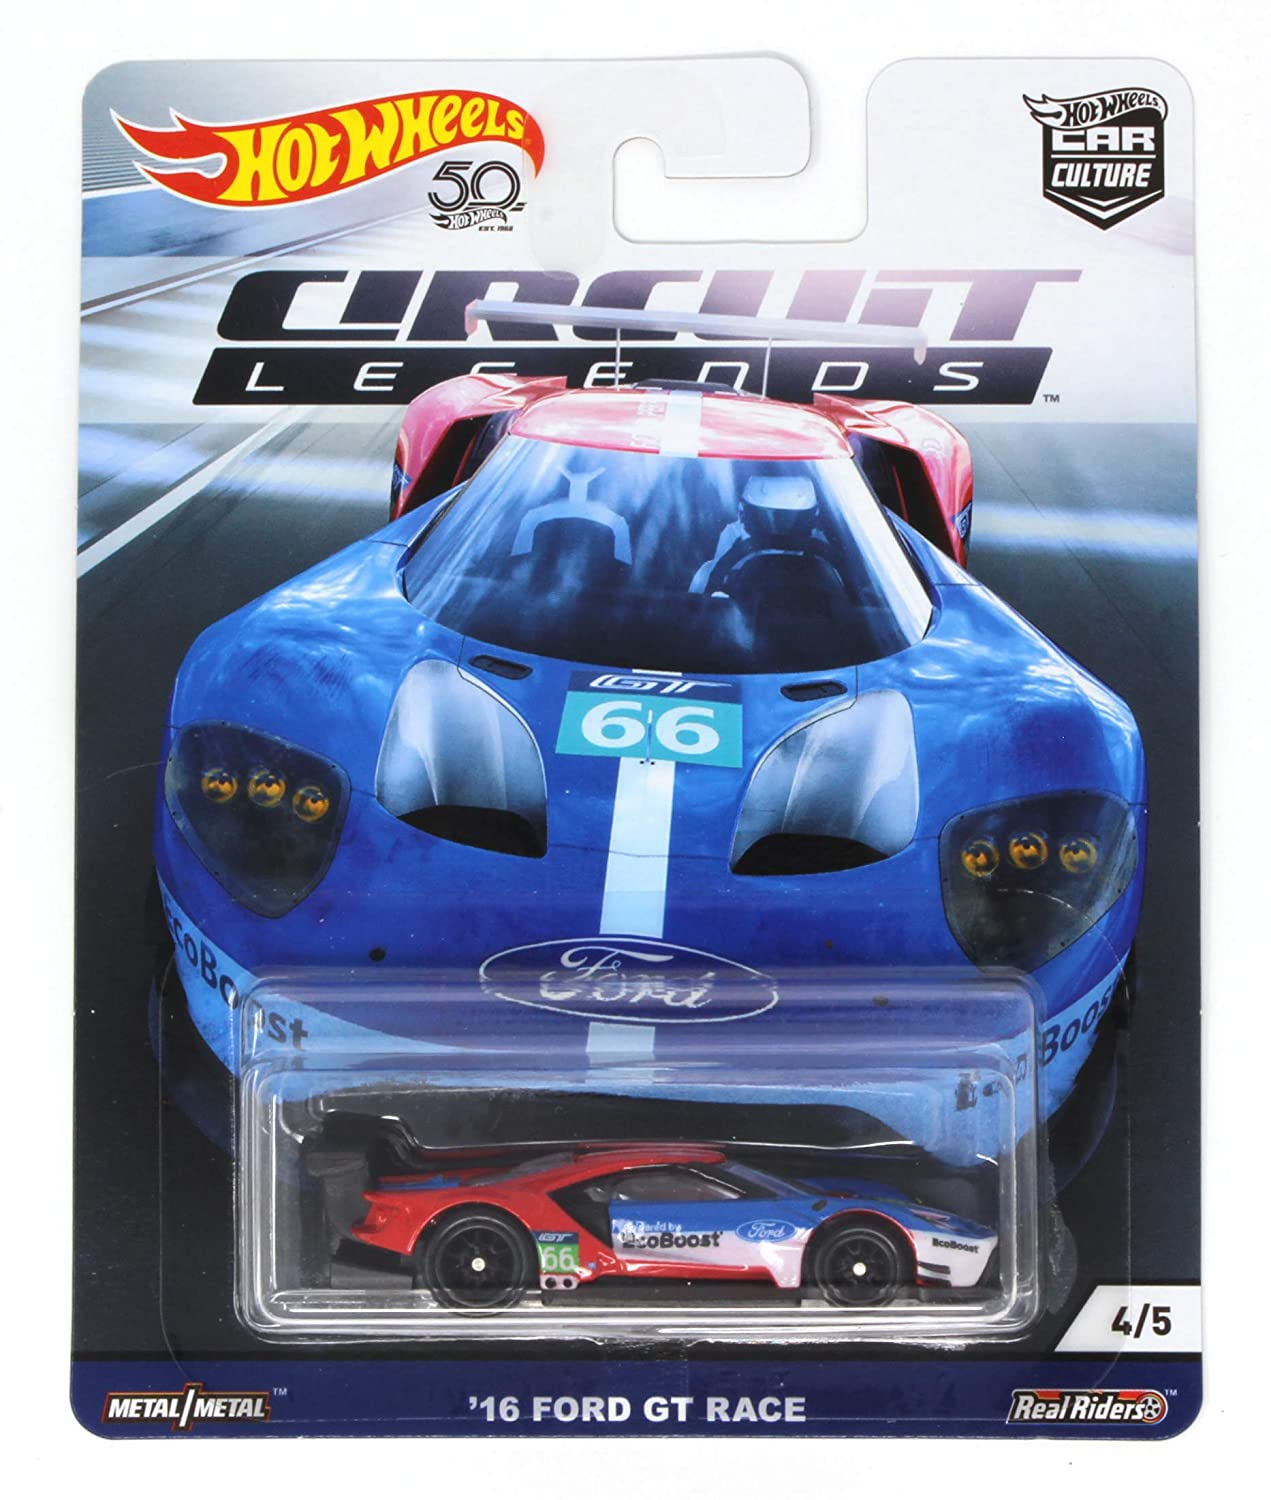 Hot Wheels Toyota 2000GT Toy Vehicle